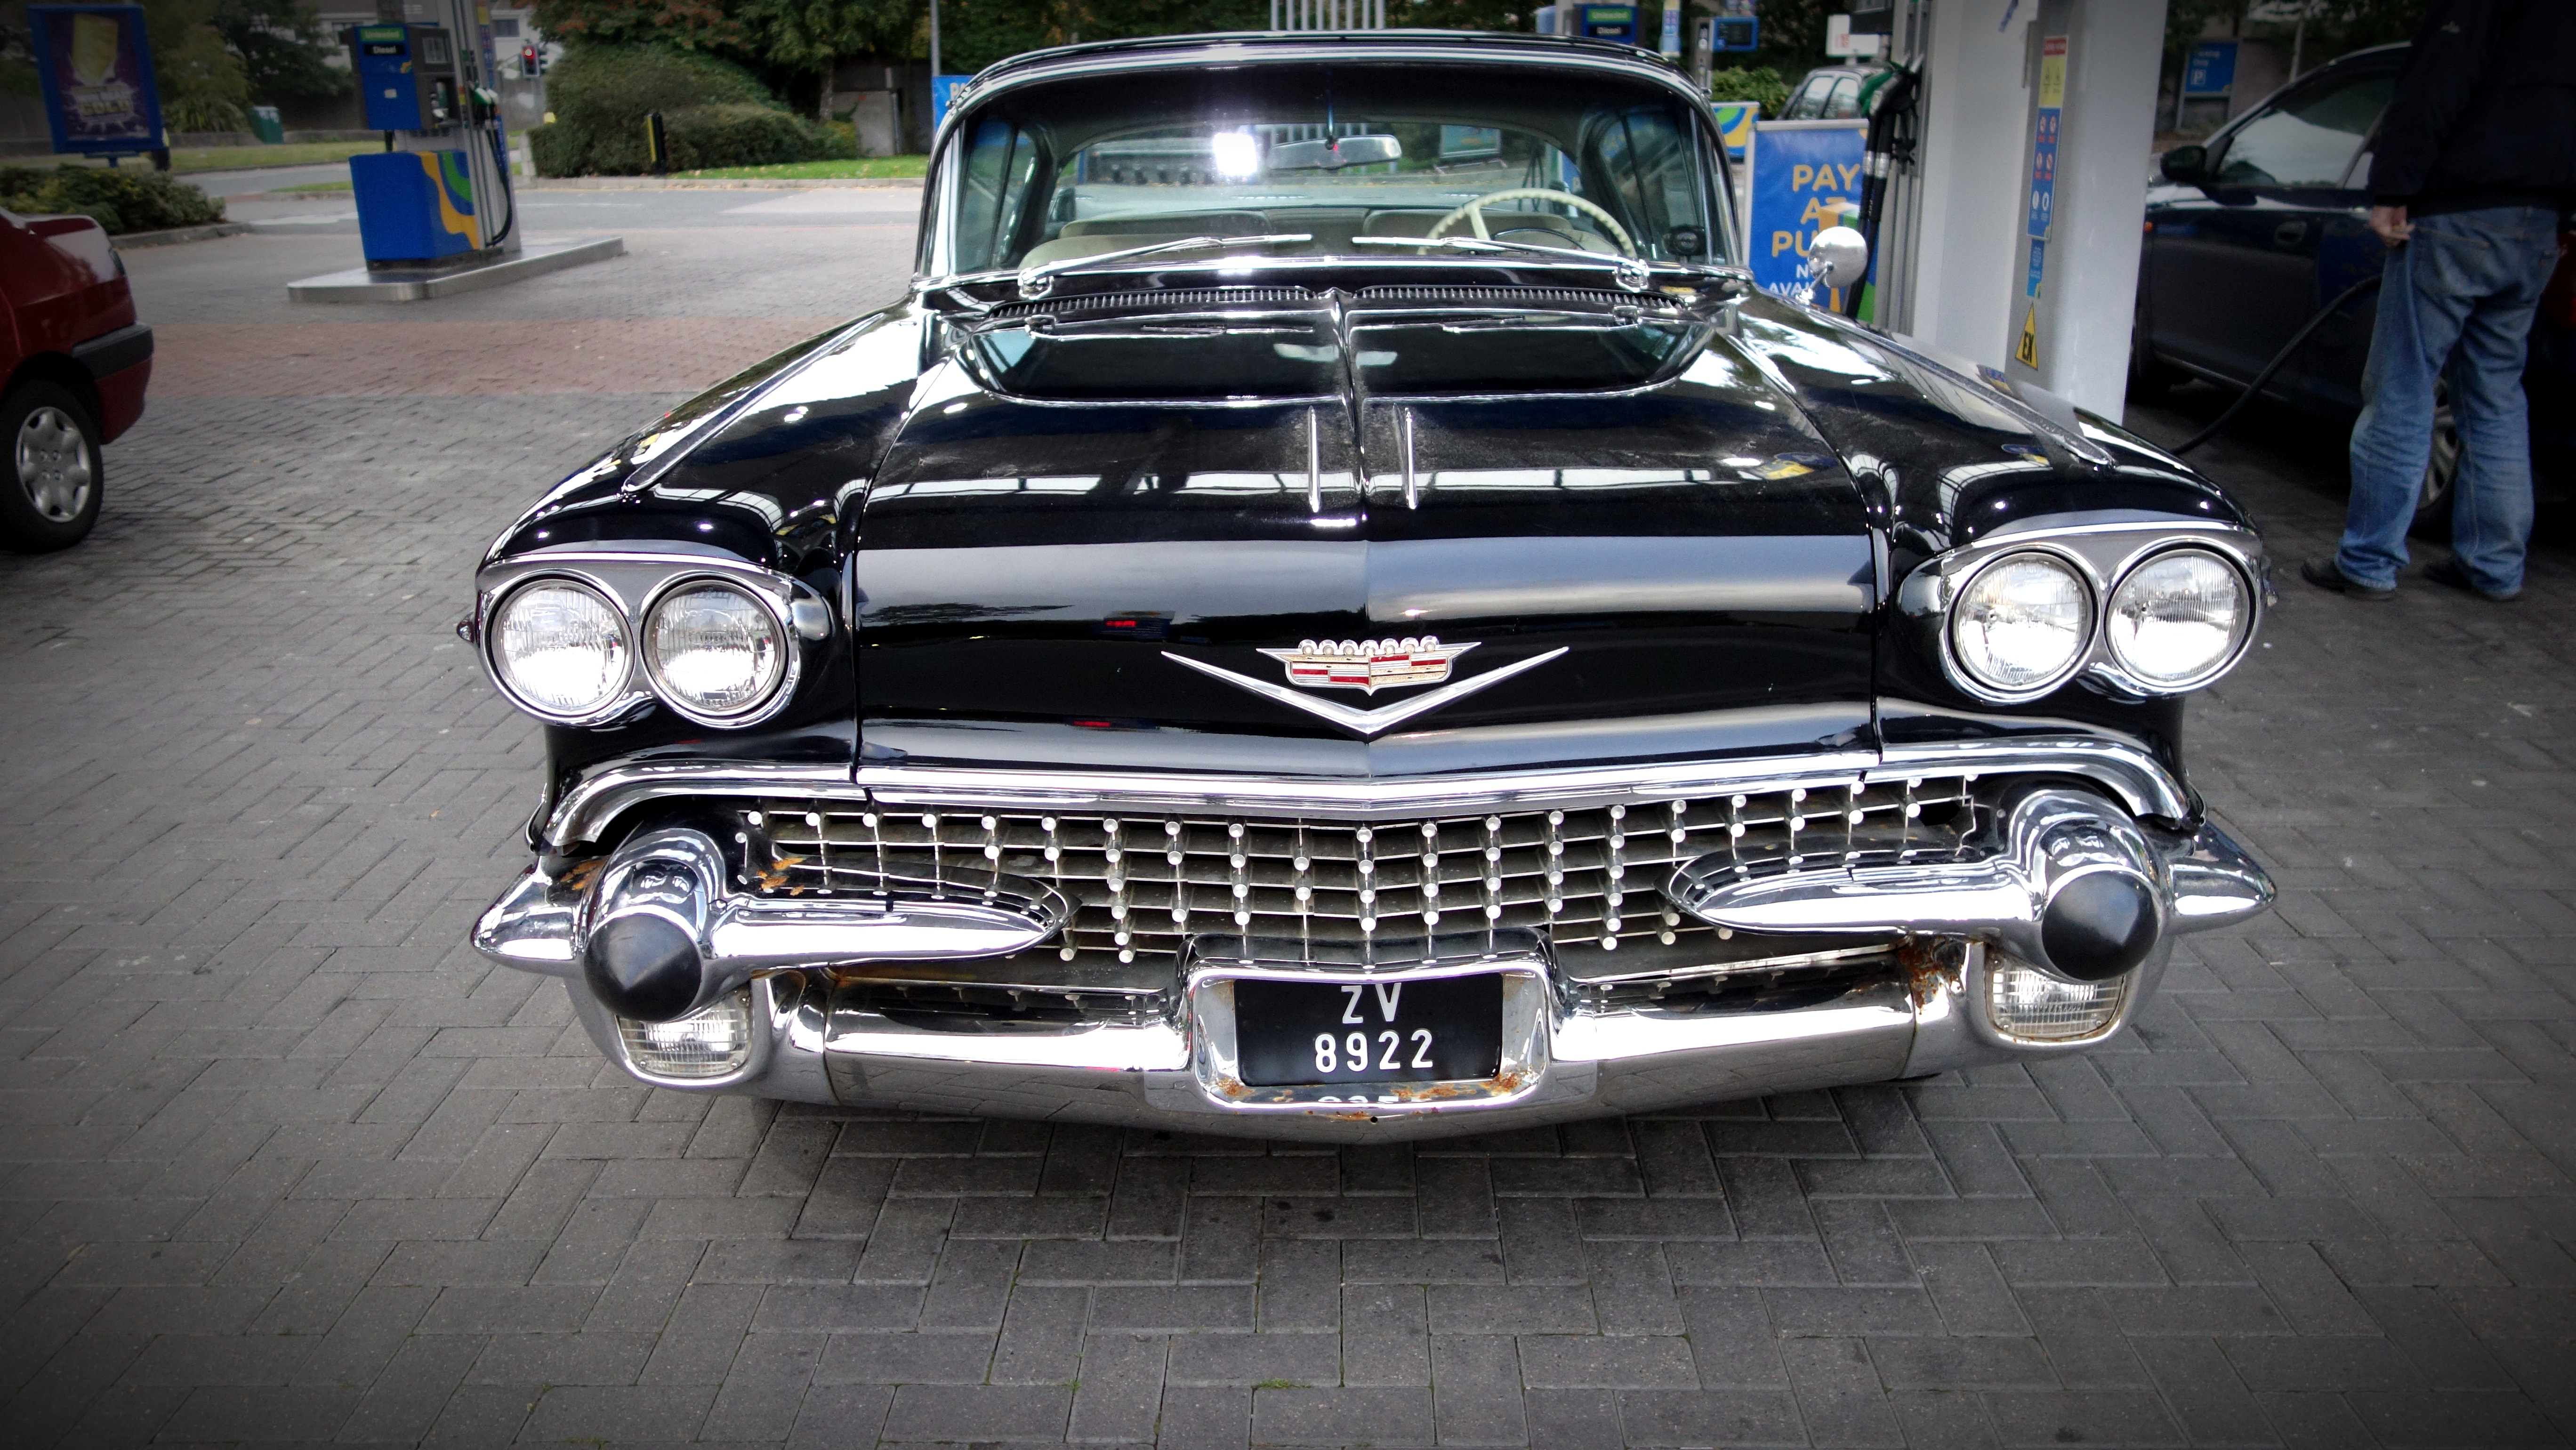 Things you didn't know about Cadillac